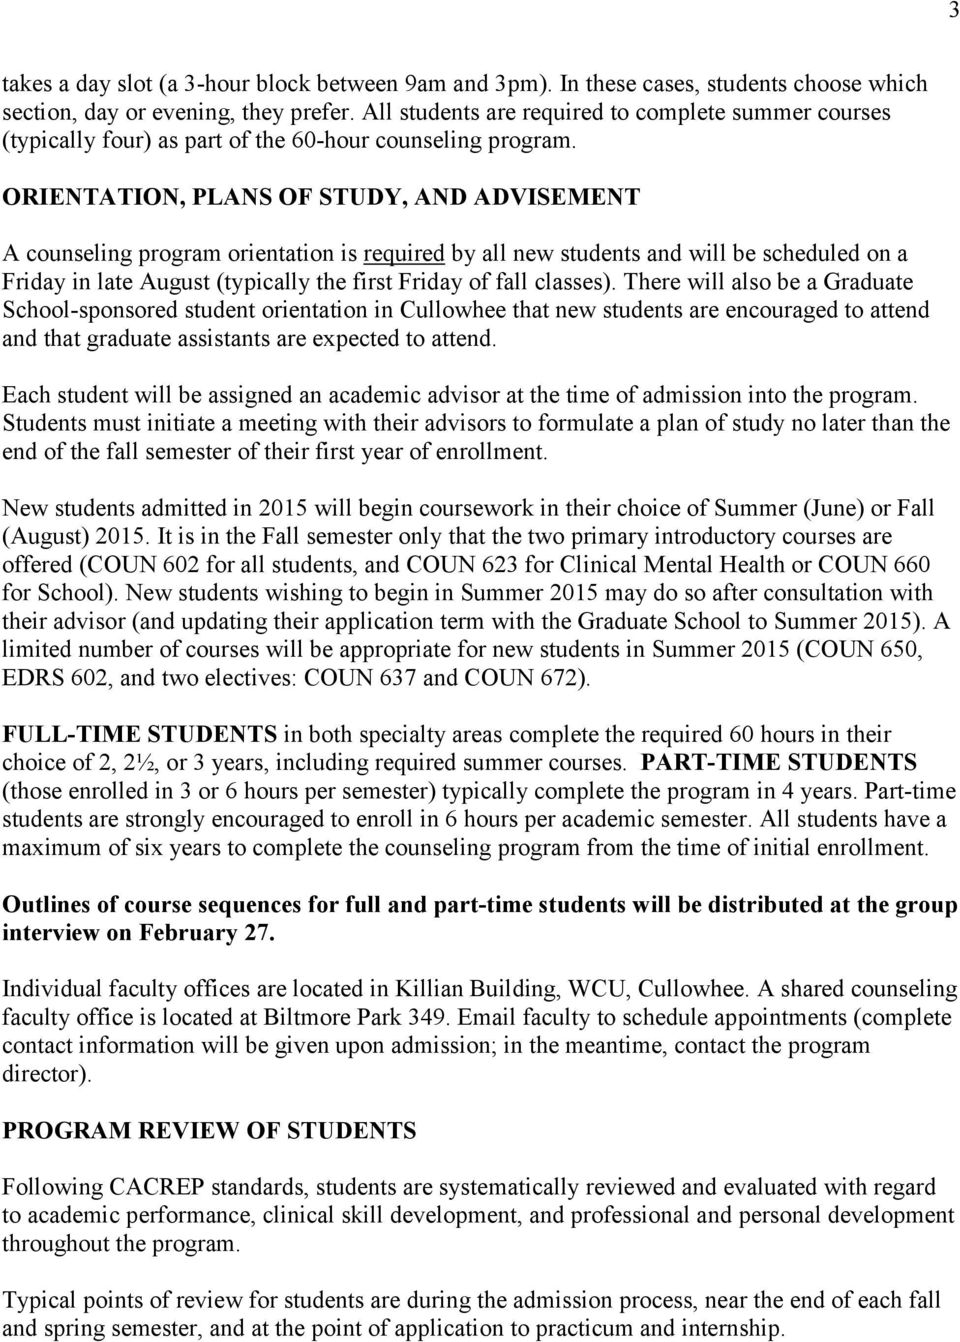 ORIENTATION, PLANS OF STUDY, AND ADVISEMENT A counseling program orientation is required by all new students and will be scheduled on a Friday in late August (typically the first Friday of fall